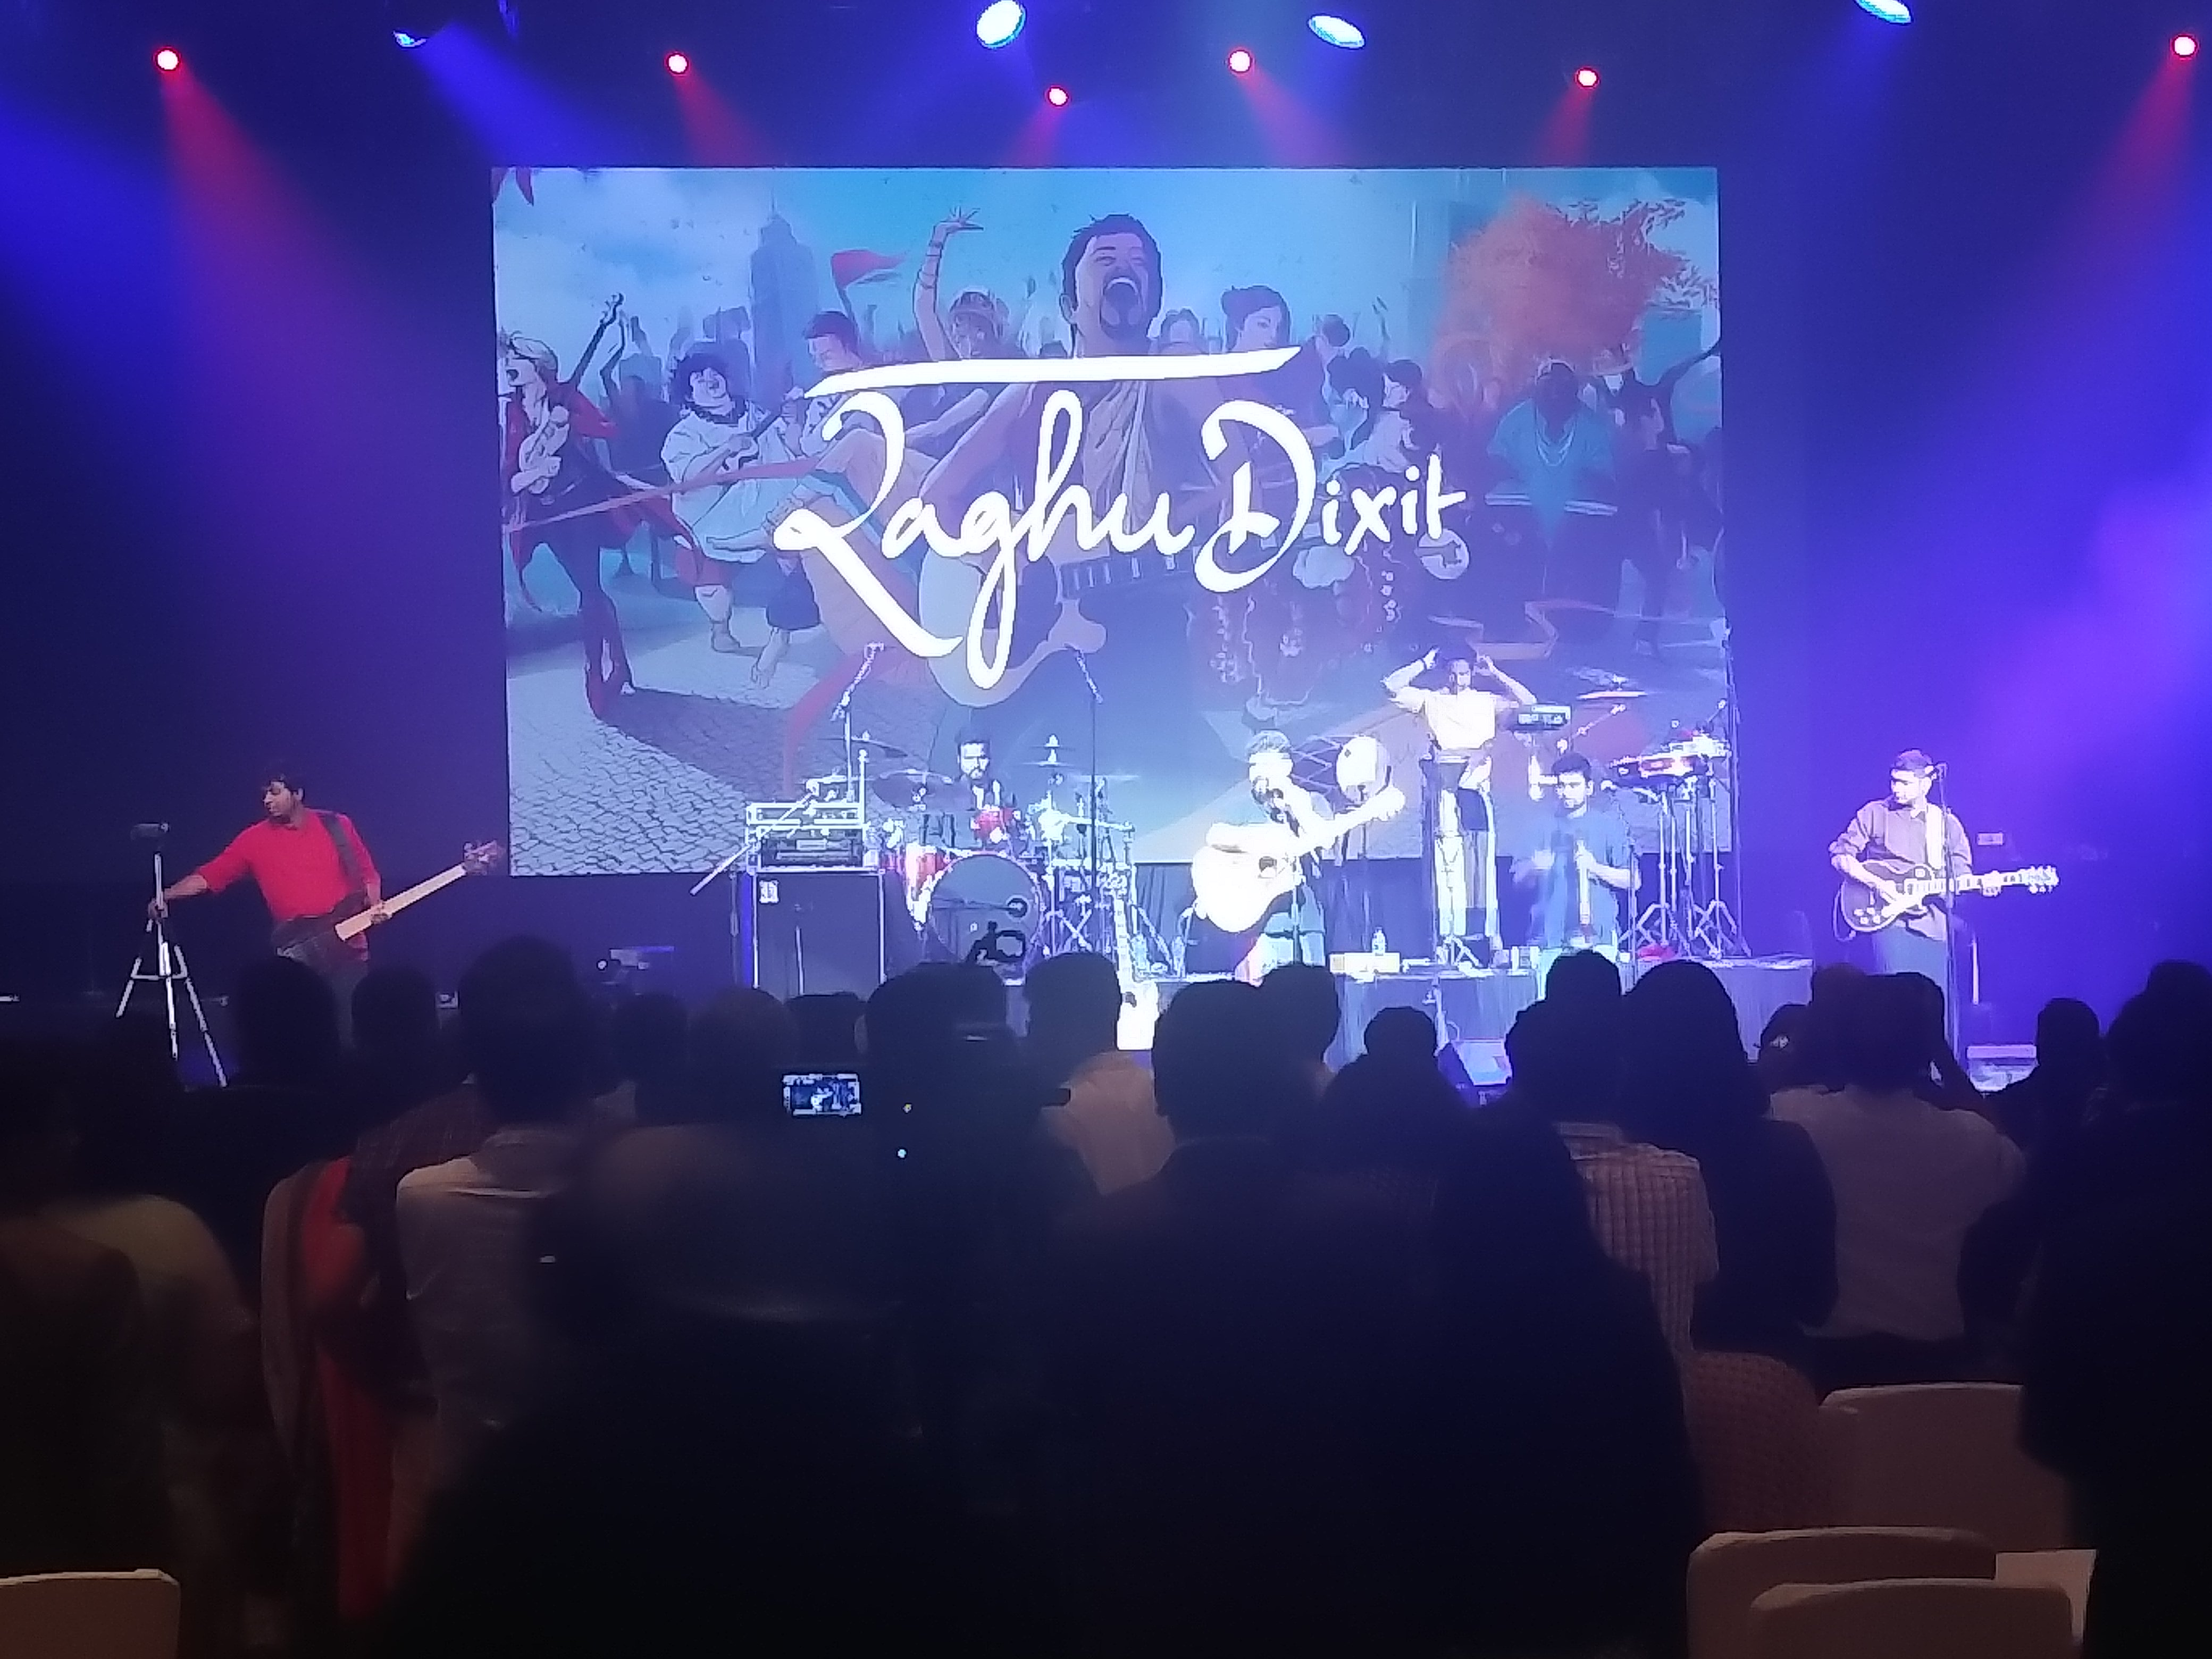 Fusion maestro Raghu Dixit's stellar show rounded off an exciting and productive Day 1 of PBD 2018 in Singapore.